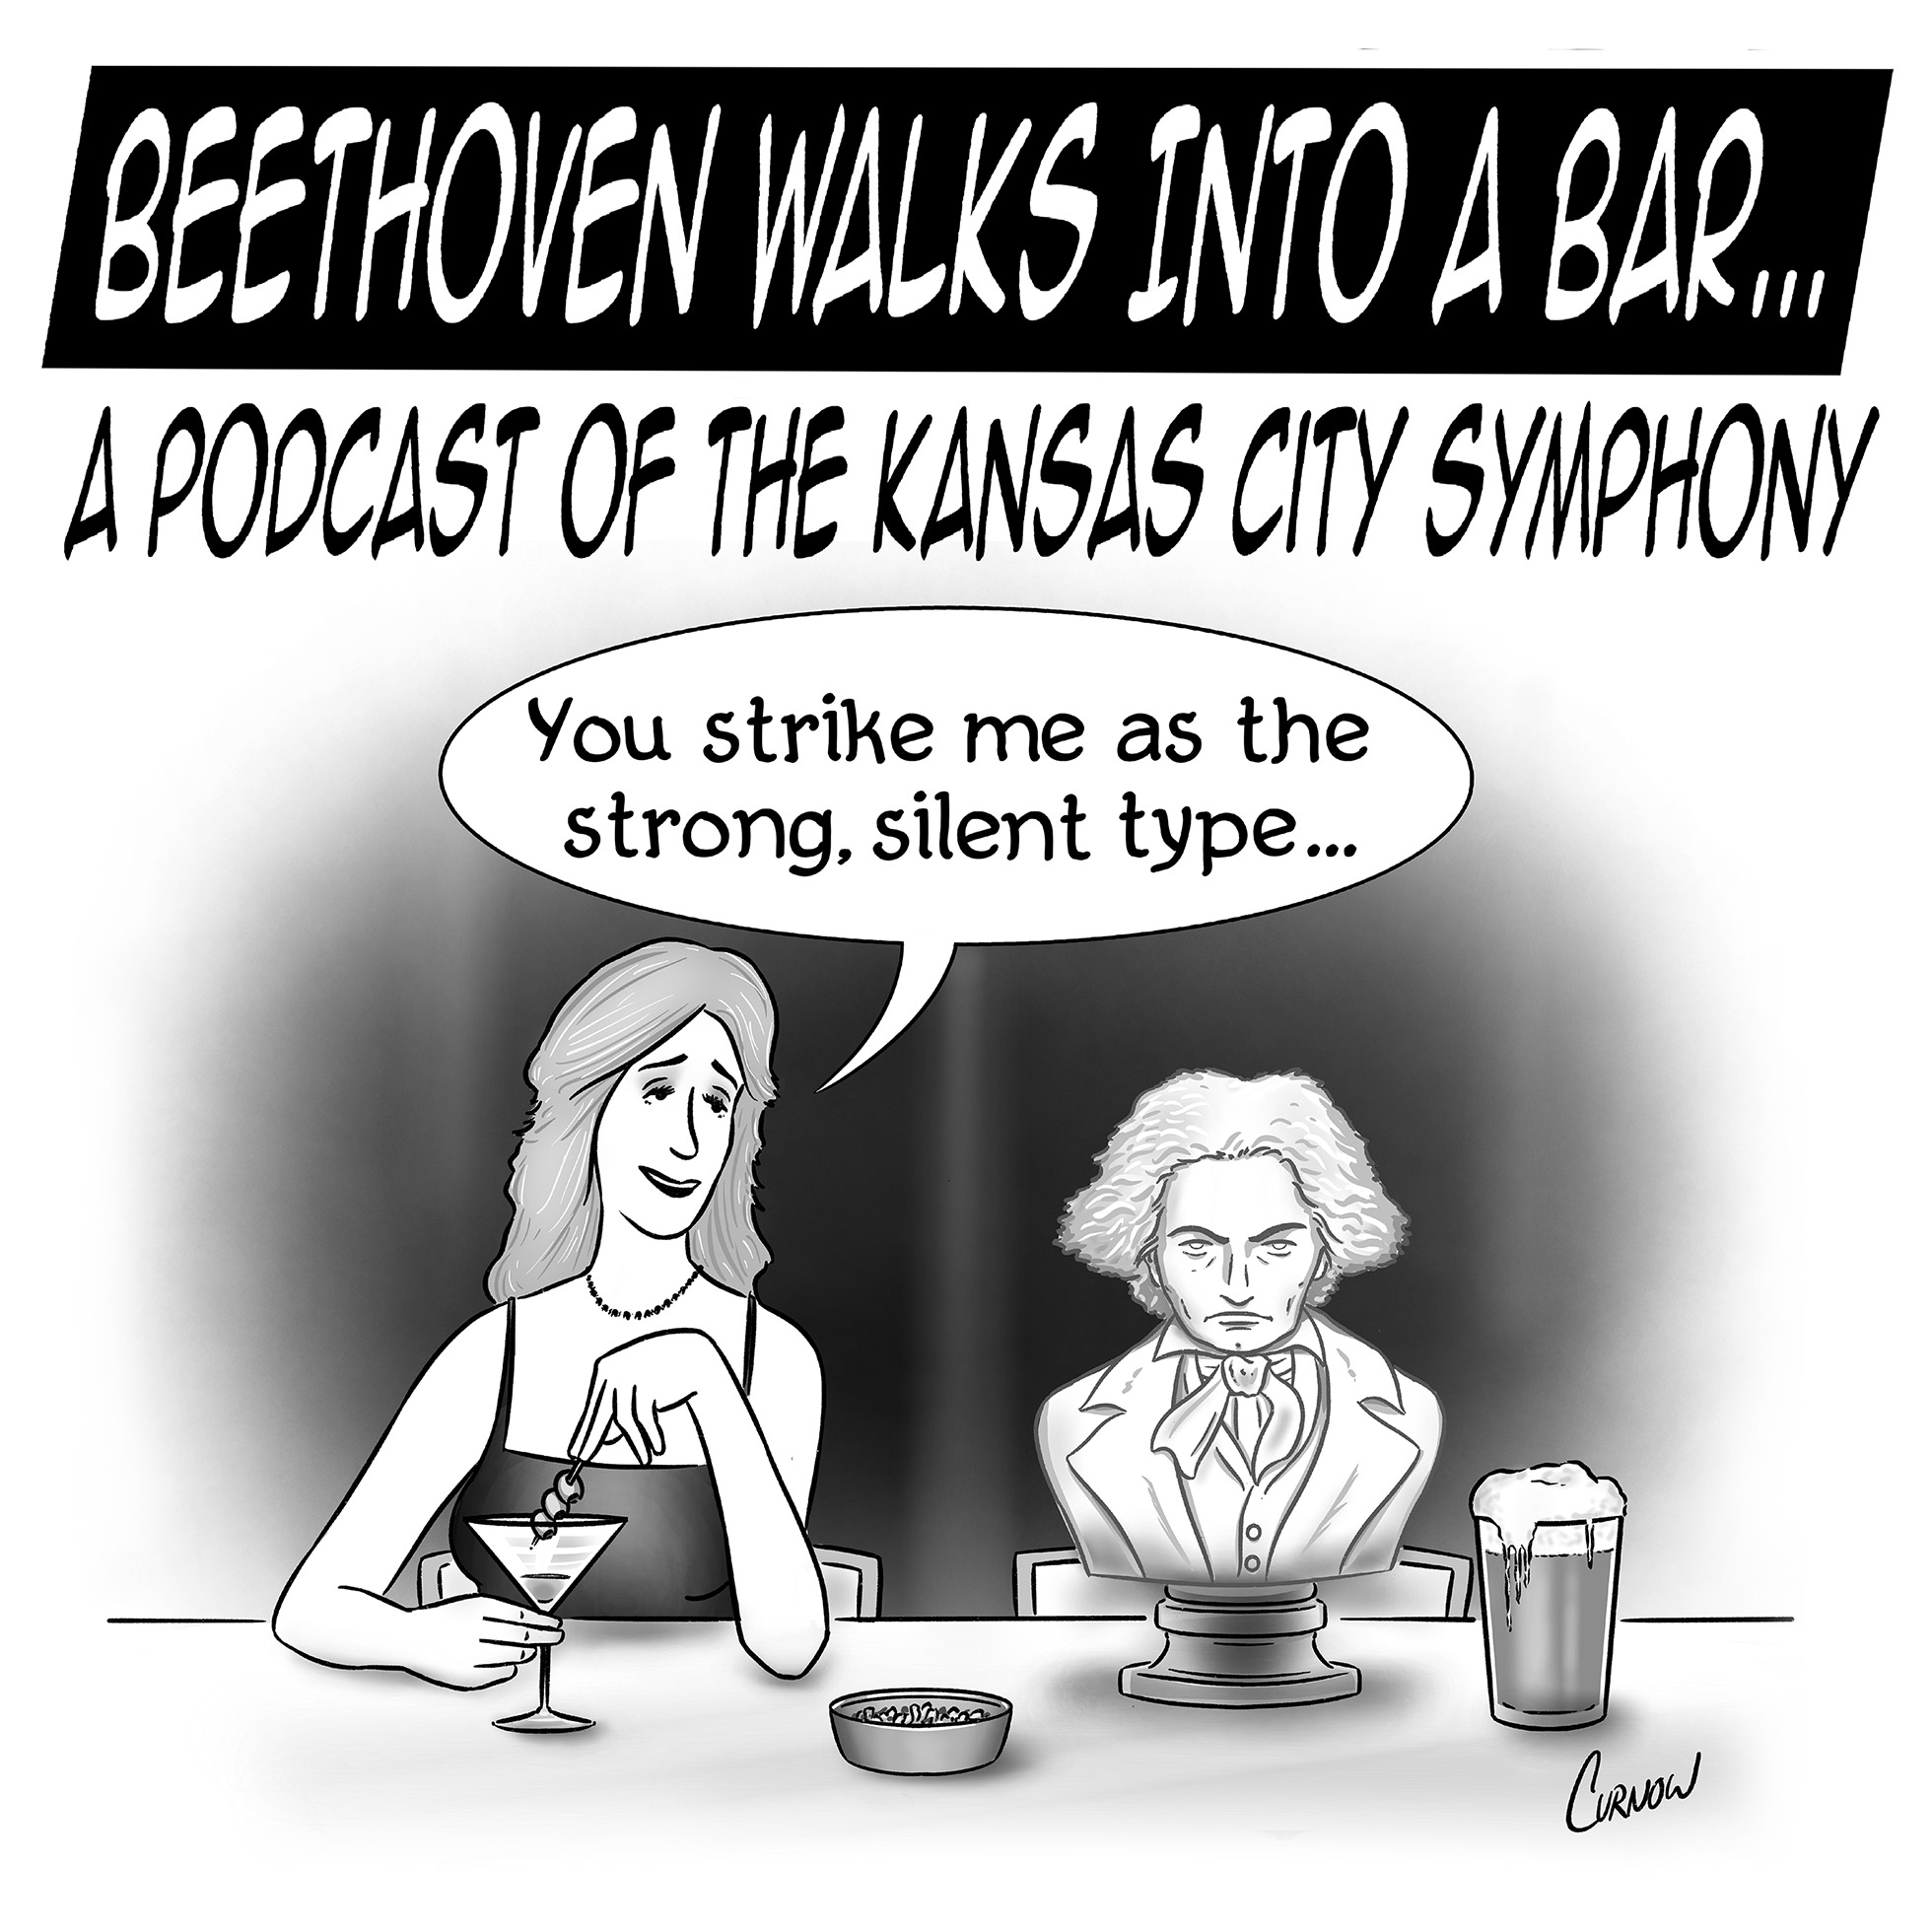 Artwork for podcast Beethoven walks into a bar...